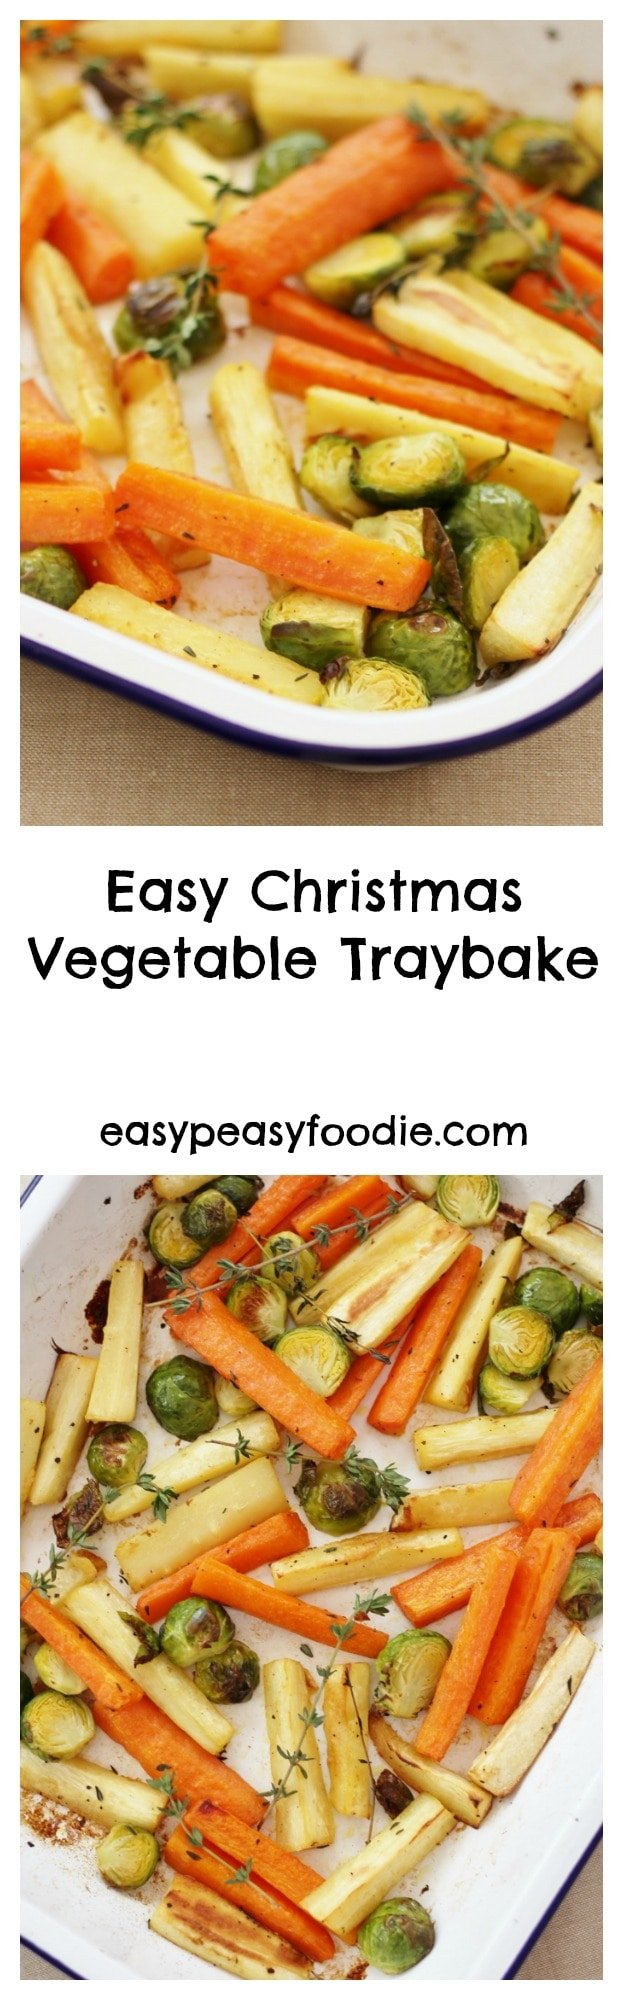 In my quest to make cooking Christmas dinner less stressful, I have created this Easy Christmas Vegetable Traybake. Roasting the parsnips, carrots and sprouts all together in one tray means you can relax and have a glass of bubbly instead of juggling pots and pans like a mad thing this Christmas. #christmas #vegetables #christmasvegetables #traybake #christmastraybake #easychristmasvegetables #stressfreechristmas #easychristmas #easypeasychristmas #easypeasyfoodie #freefromgang #cookblogshare